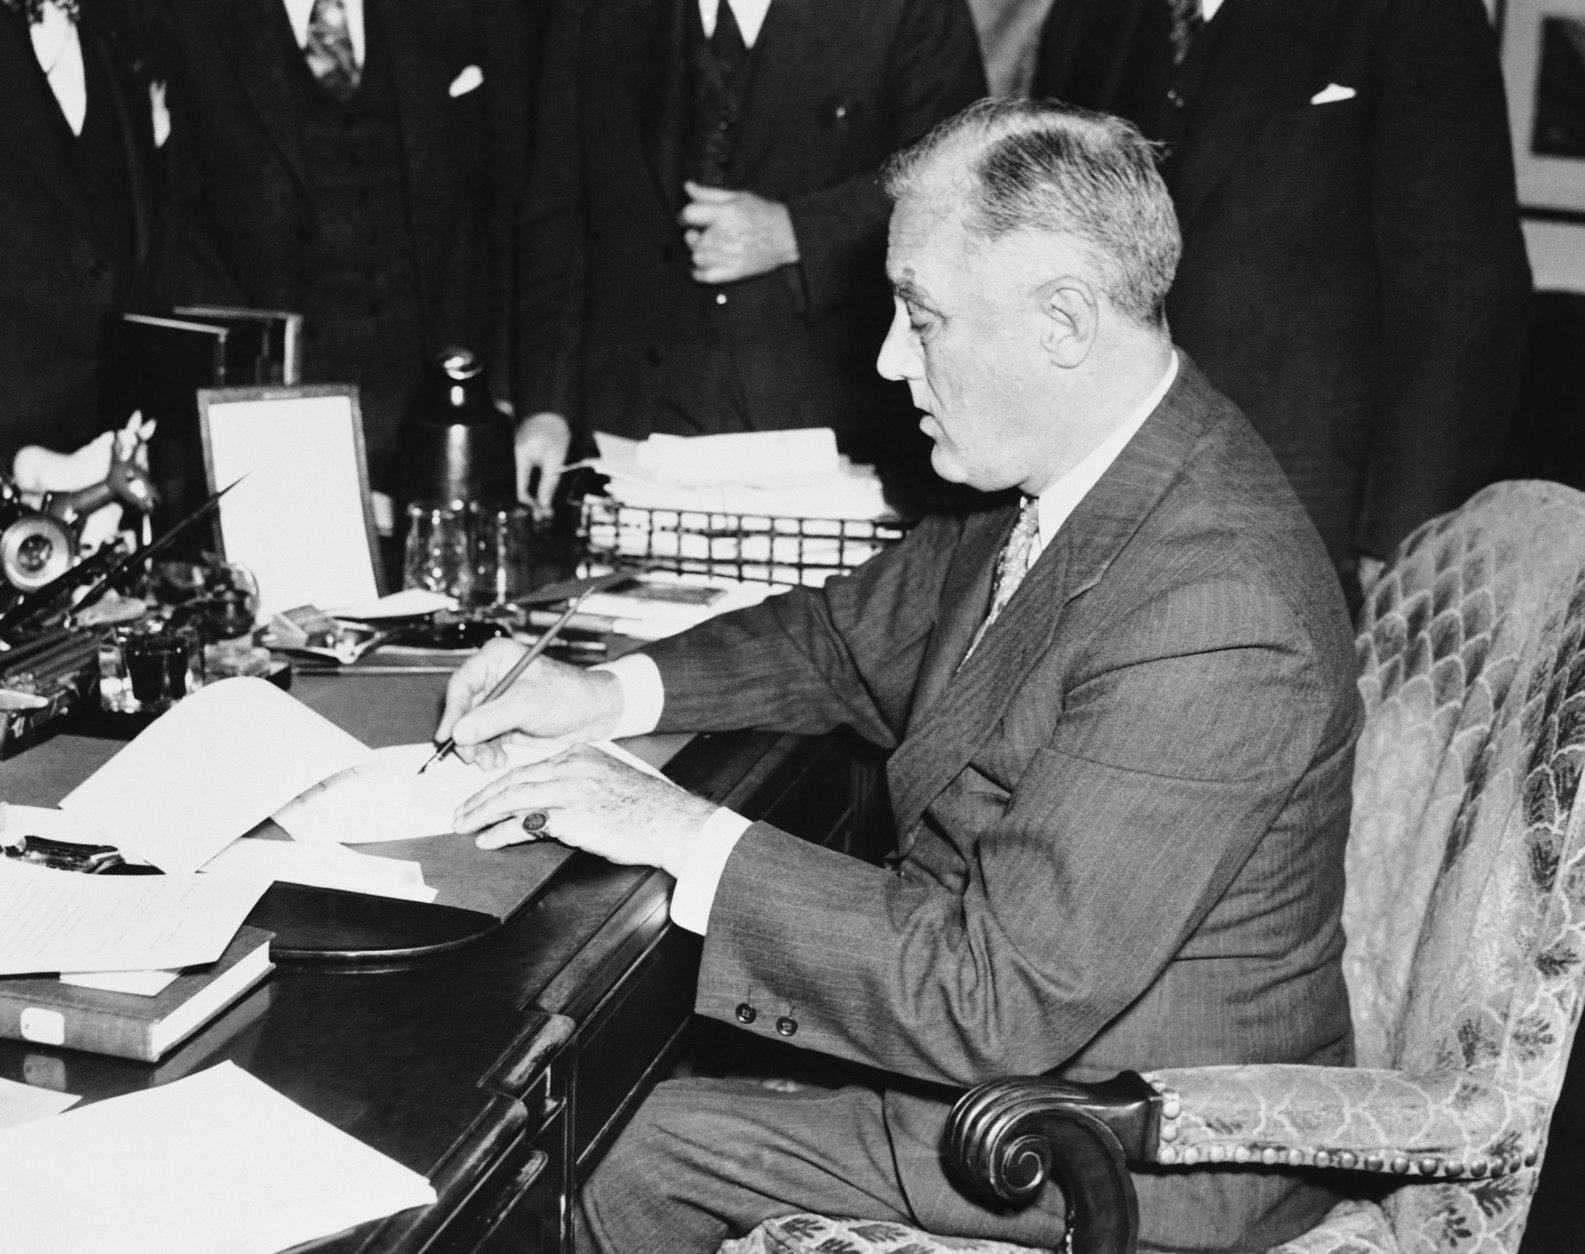 President Franklin Roosevelt is shown signing the neutrality bill in the White House, Washington on Nov. 4, 1939 making  law this bill which opens American markets to belligerent cash-and-carry purchasers.   The chief executive signed the bill before a gathering of congressional leaders and cabinet members - including Cordell Hull, Secretary of State. Only Roosevelt is shown in image. (AP Photo)